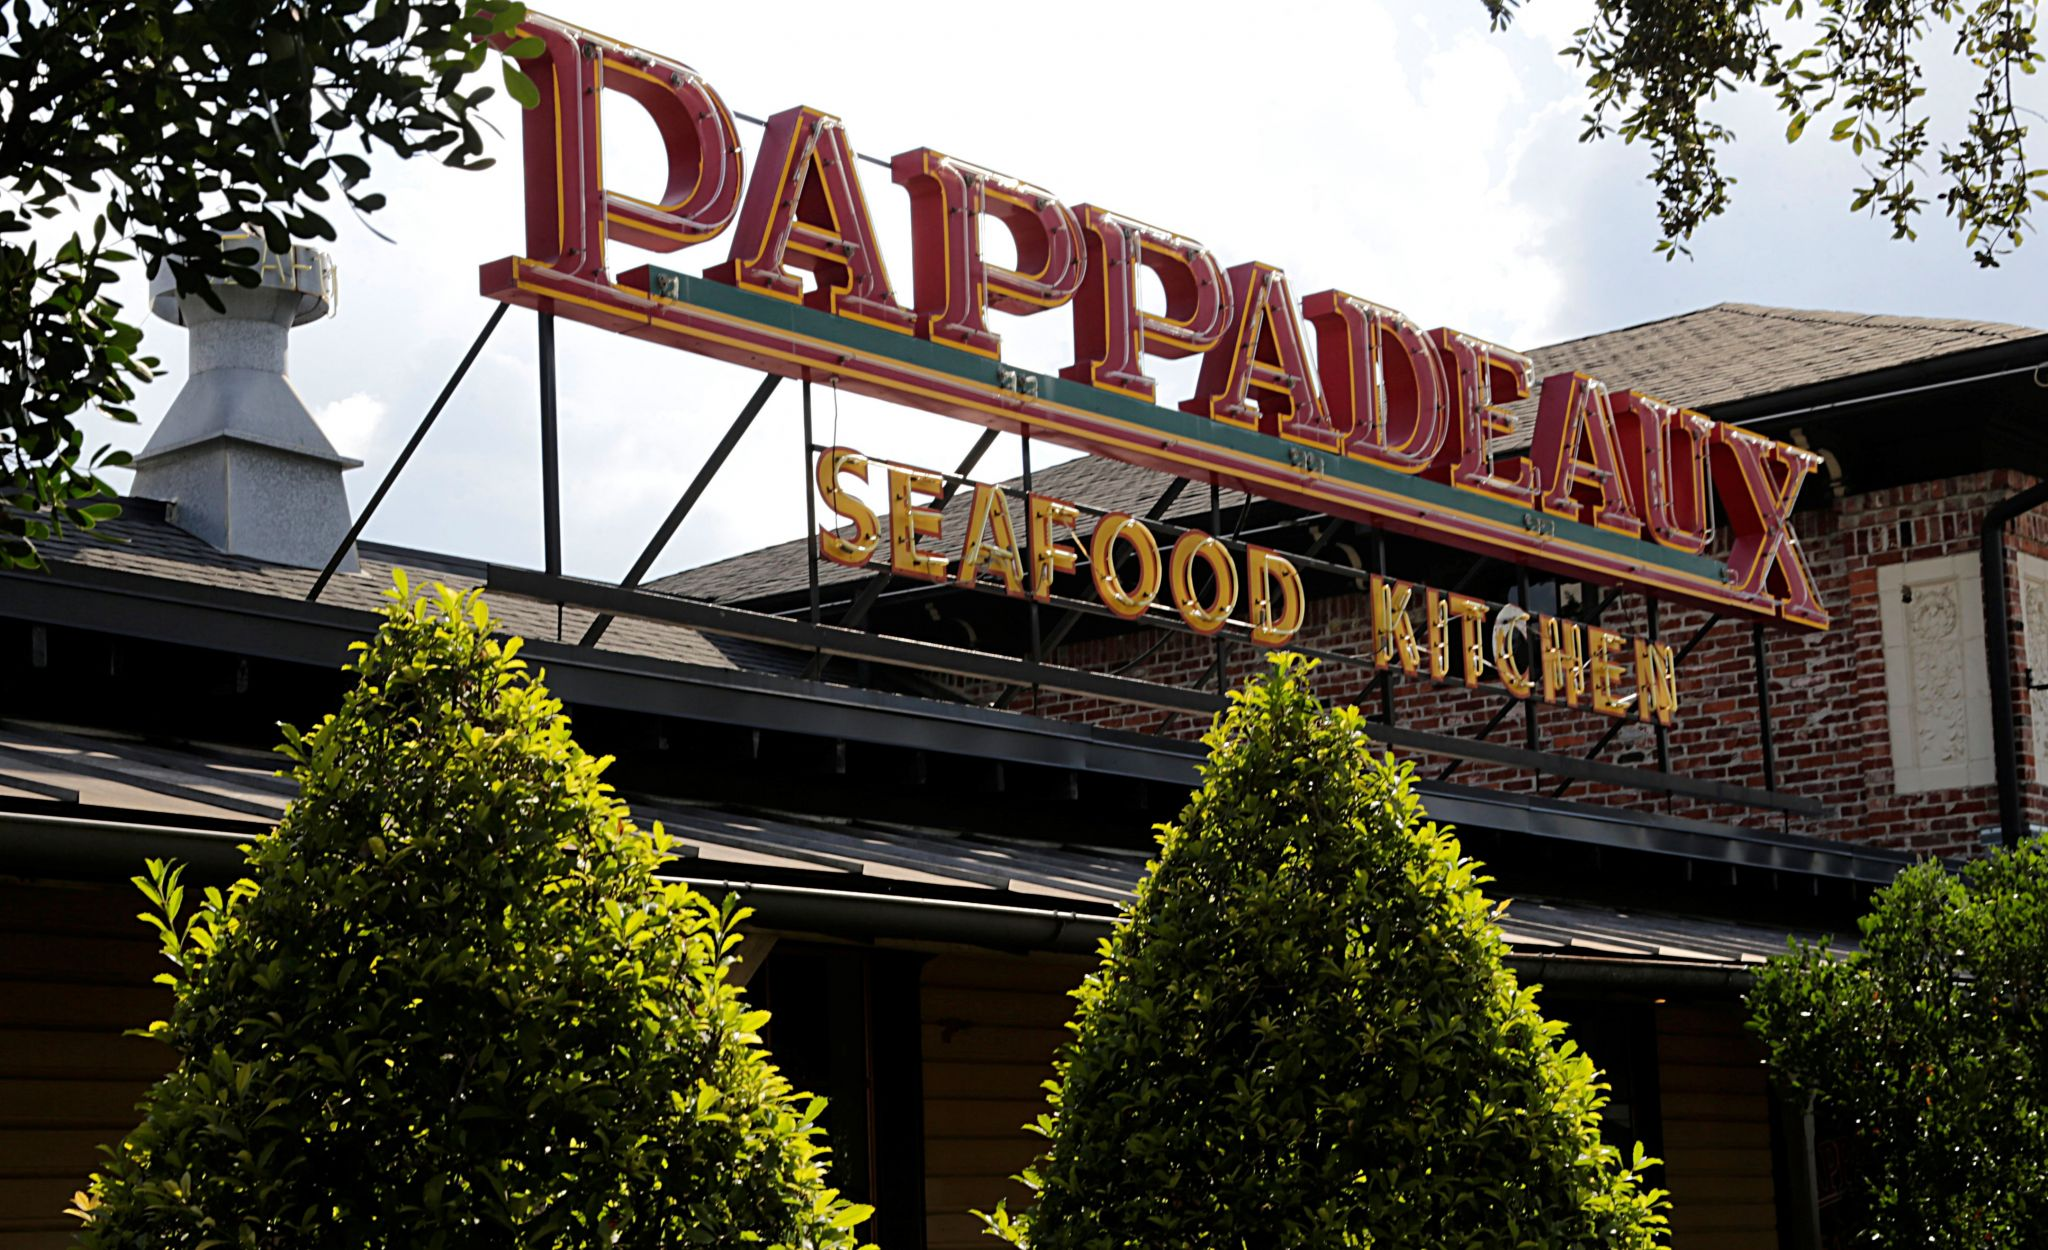 Love anything the way rappers love putting Pappadeaux in lyrics